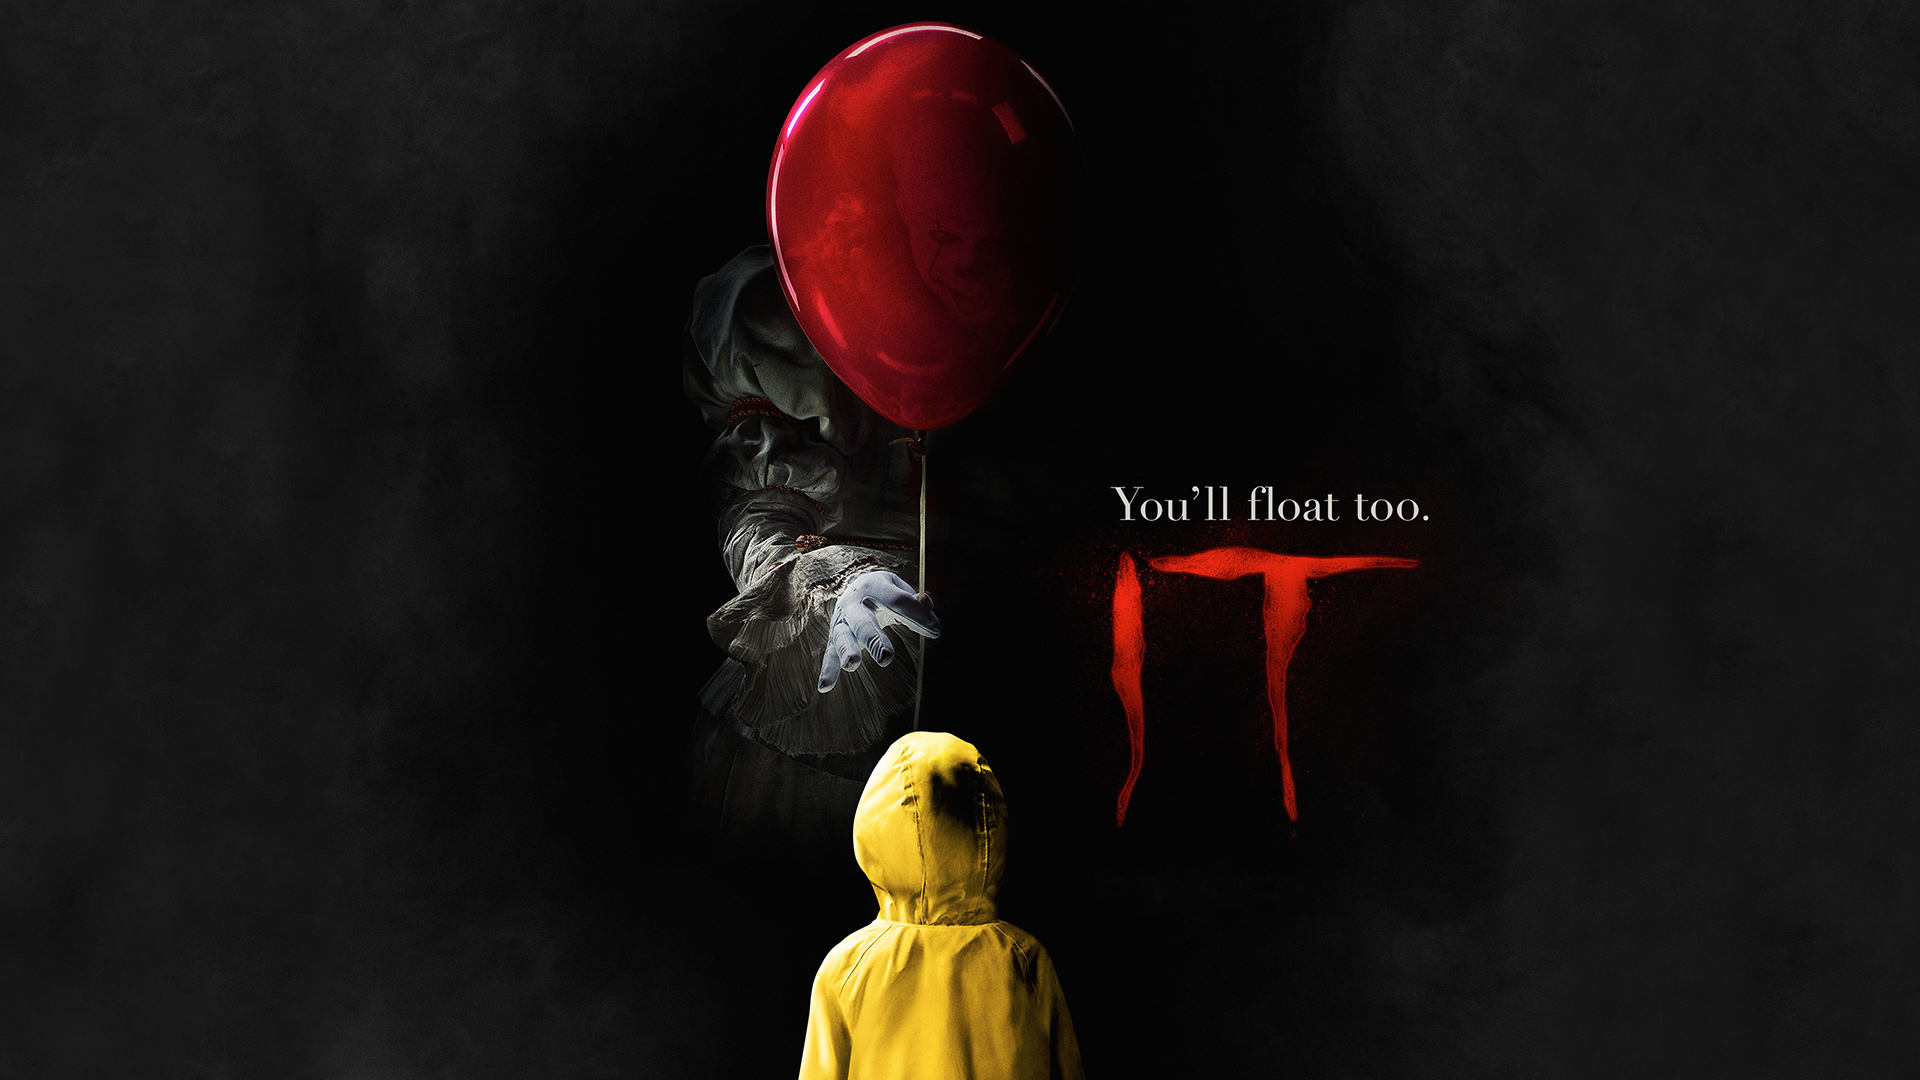 it-balloon-2017-horror-movie-1613